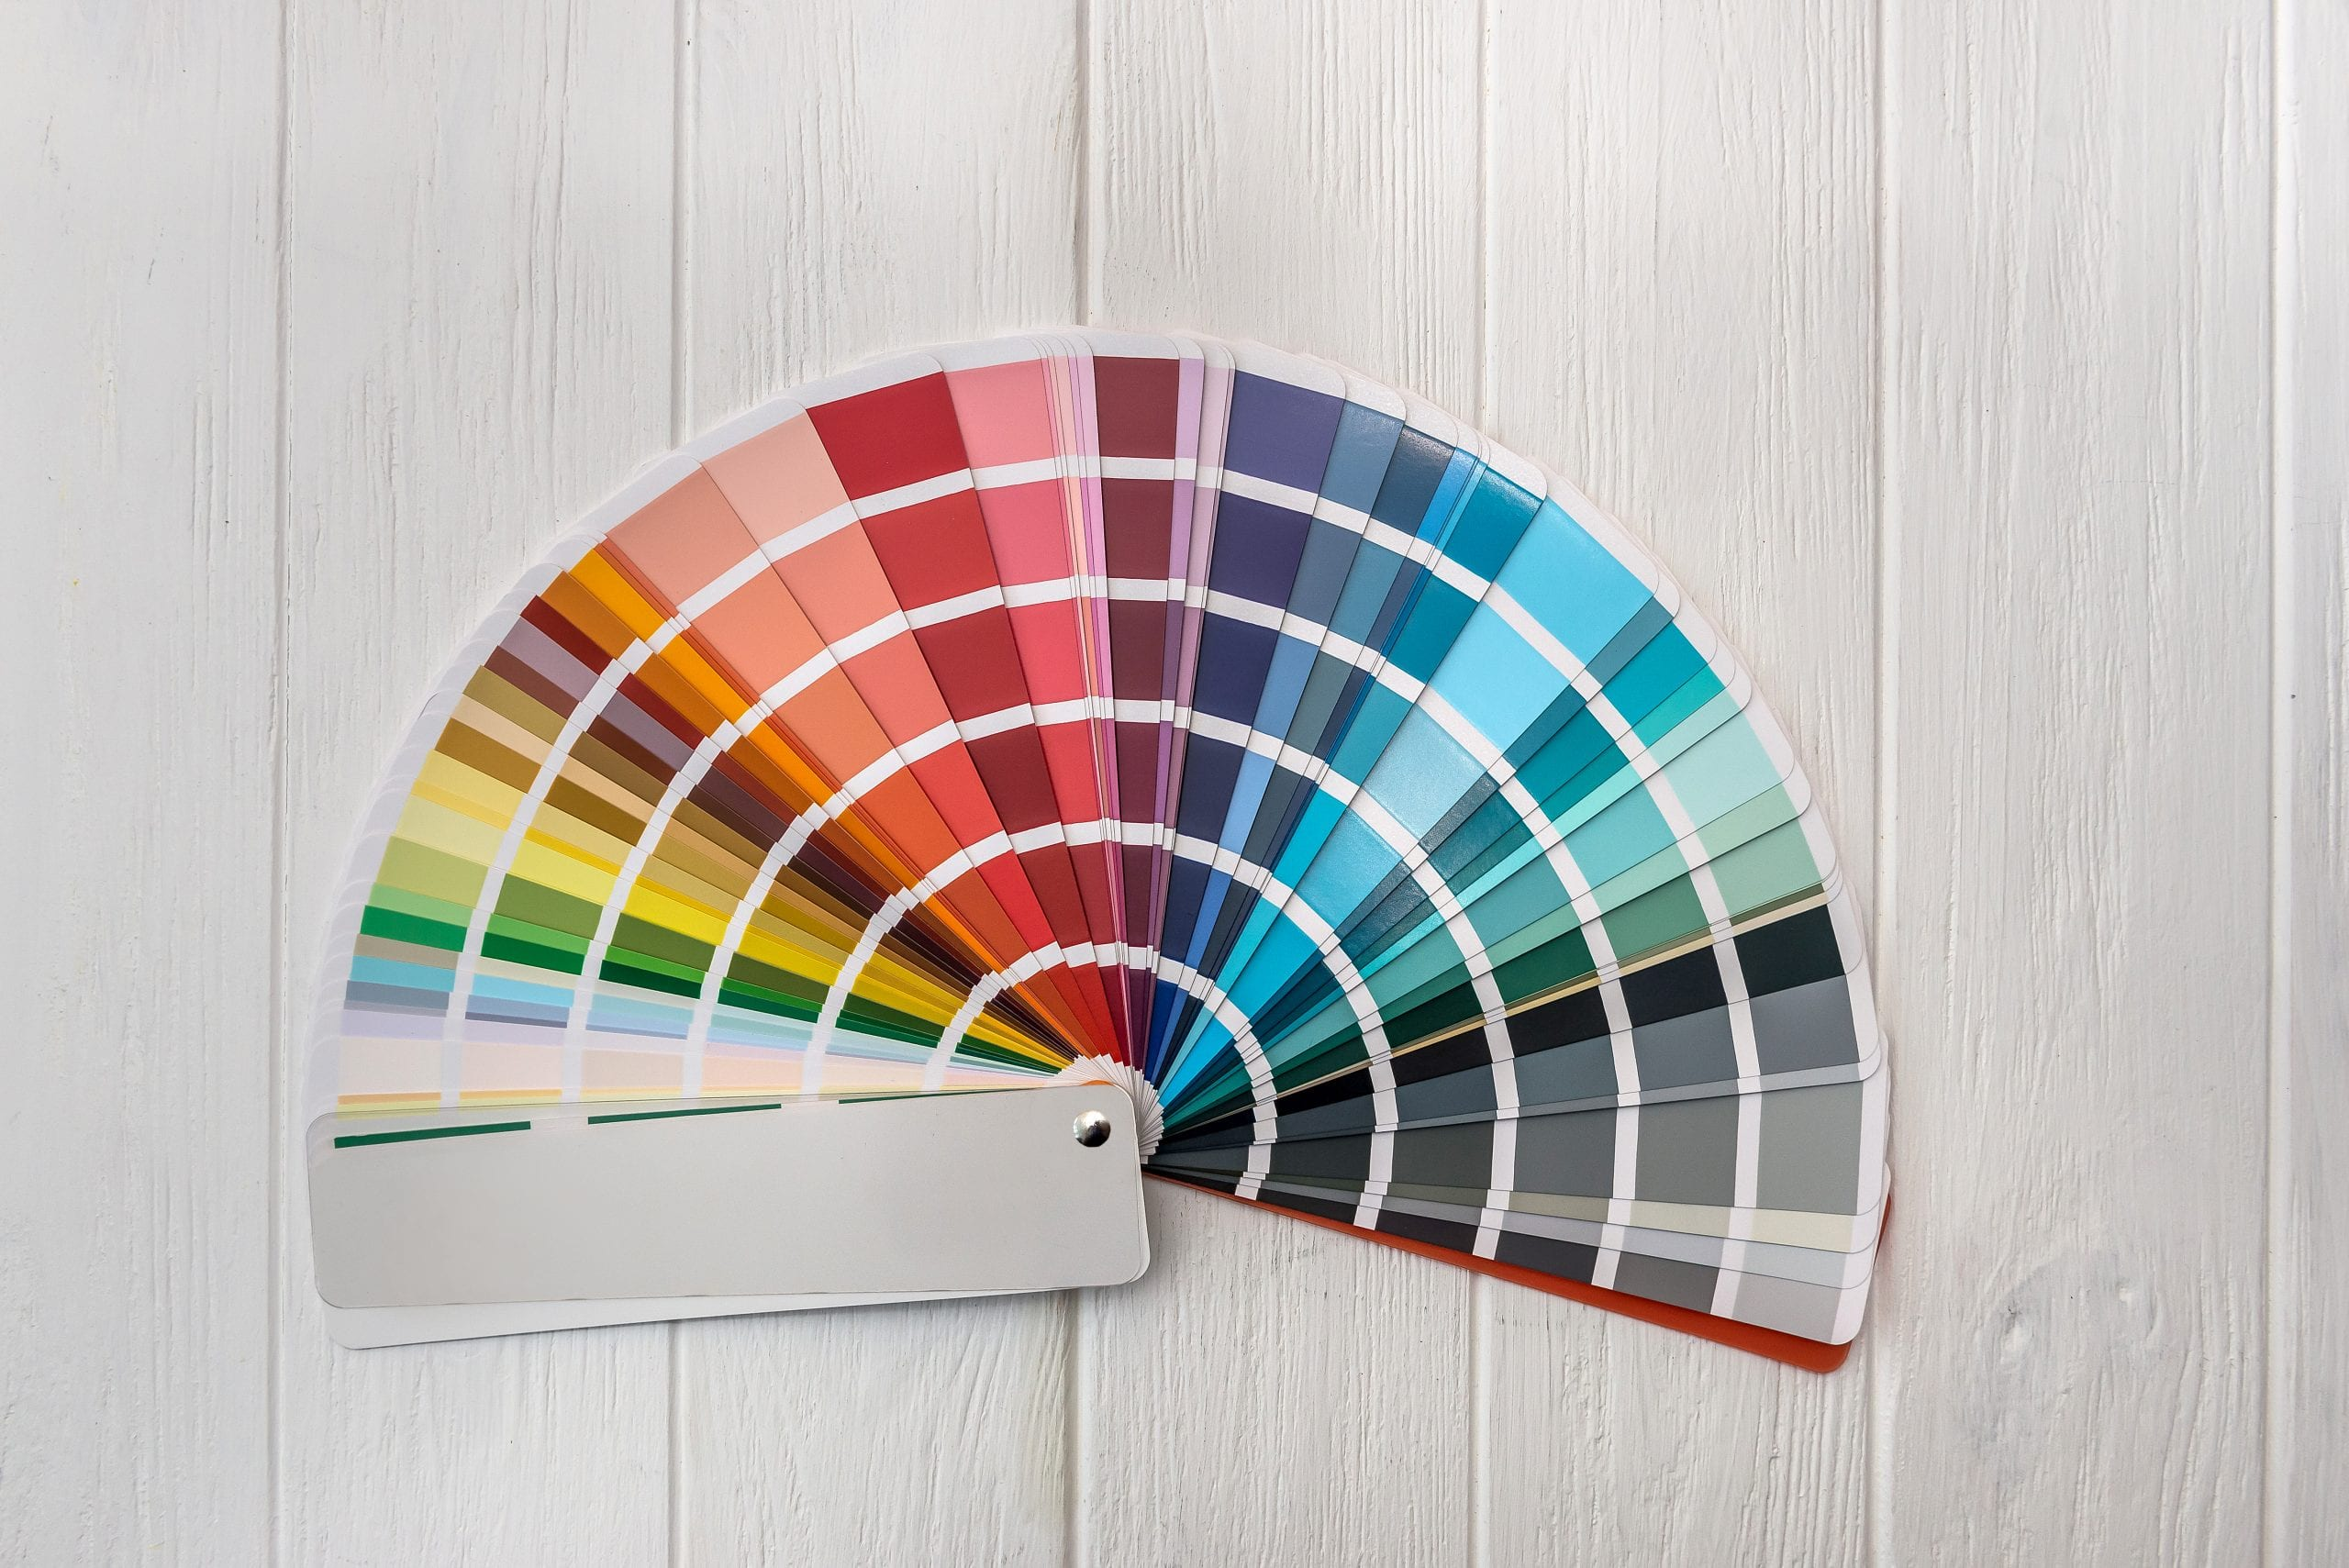 Colorful palette for wall painting on wooden desk